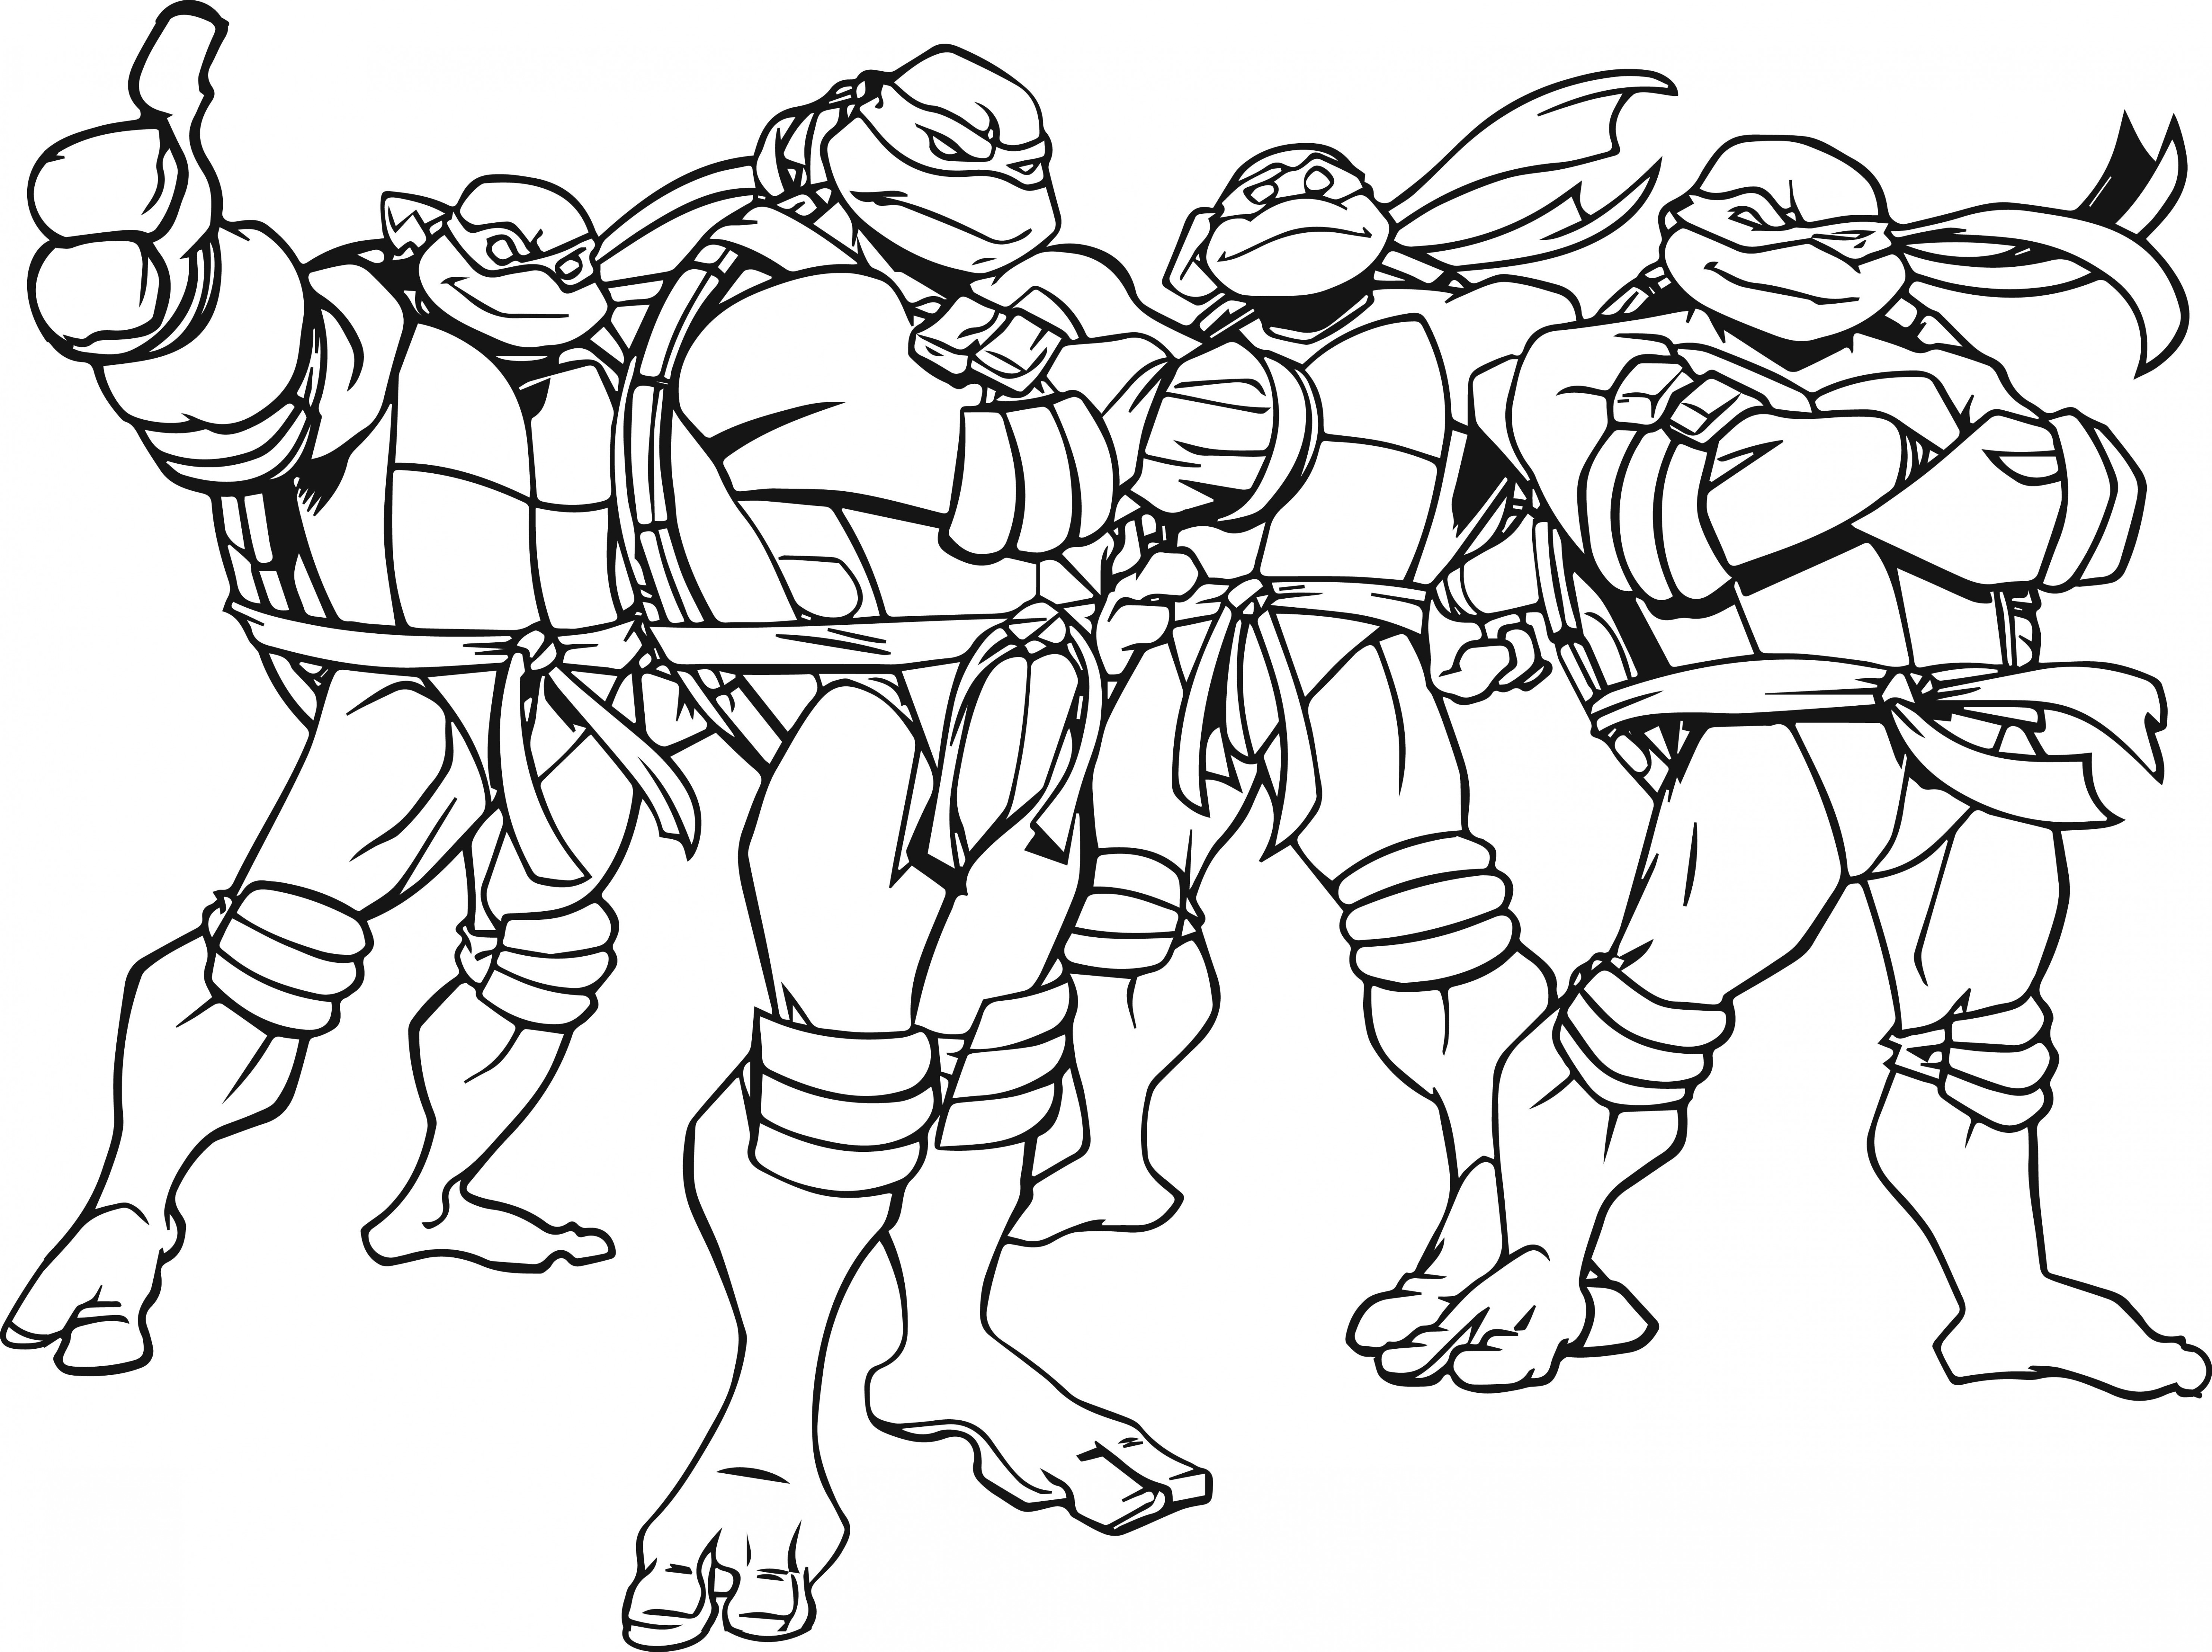 ninja turtle coloring book pages teenage mutant ninja turtles printable coloring pages book pages turtle coloring ninja